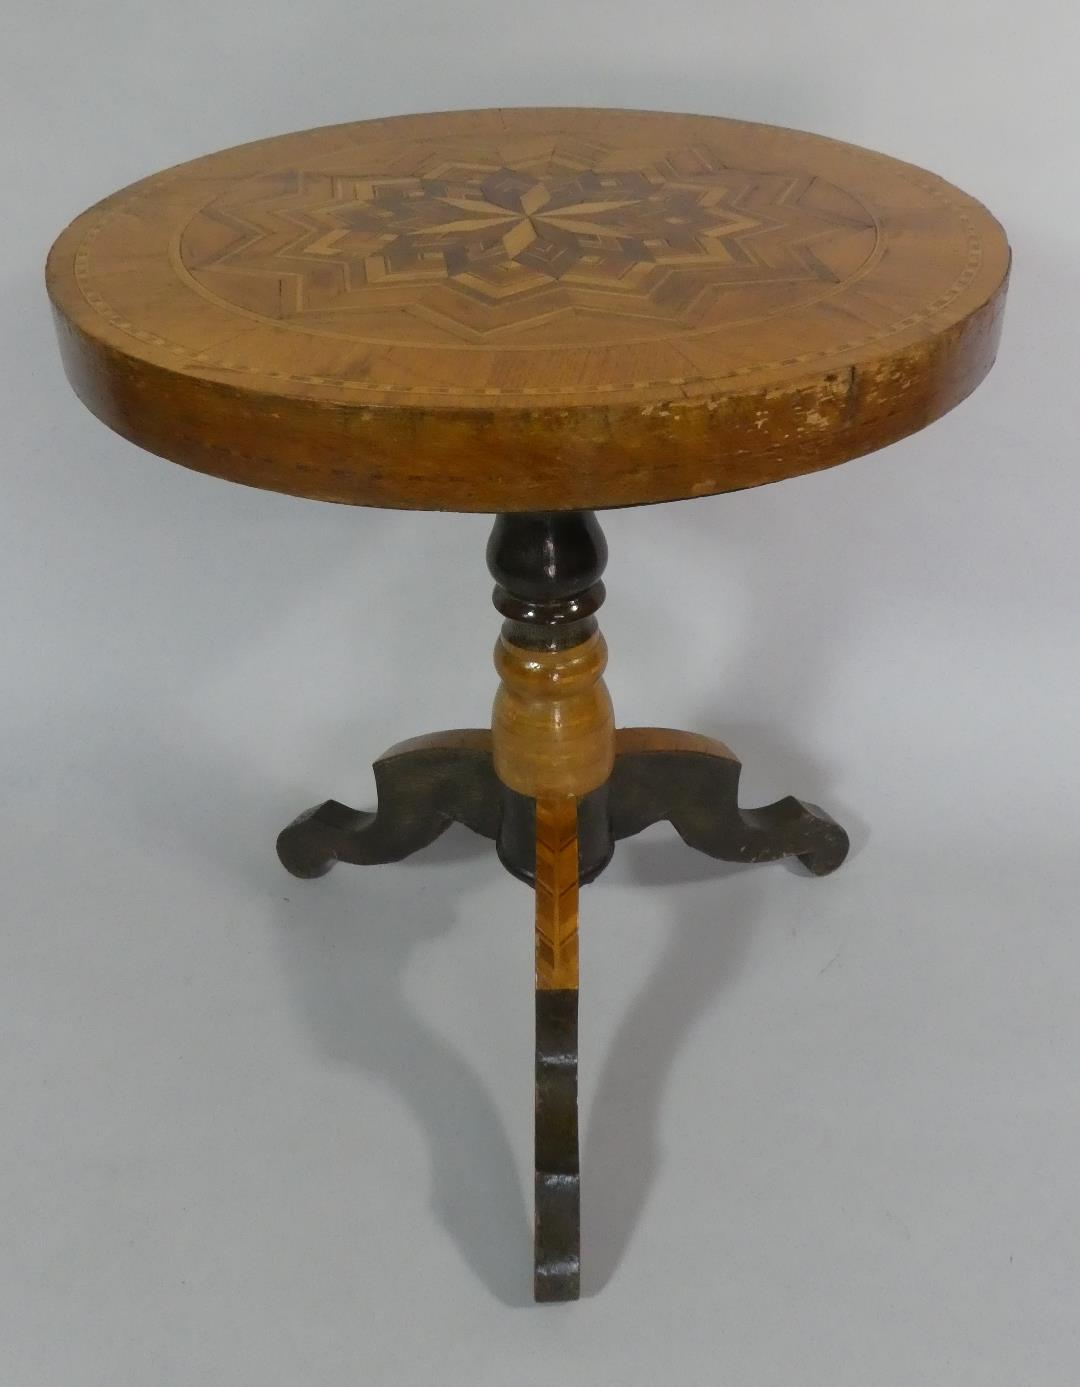 A Late 19th/Early 20th Century Italian Sorrento Ware Pedestal Table with a Parquetry Starburst